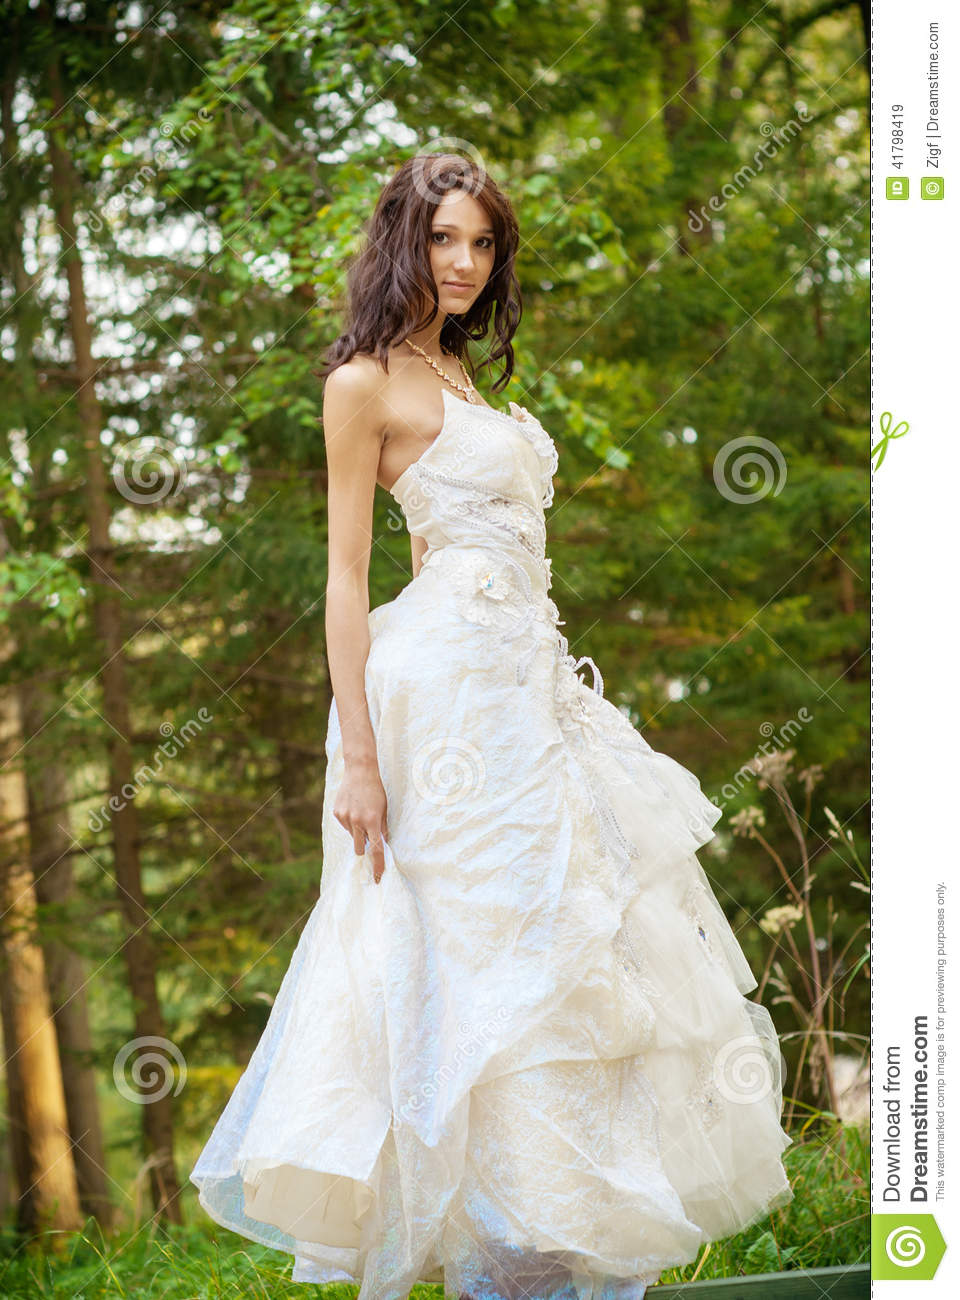 Are dress from beautiful bride think, that